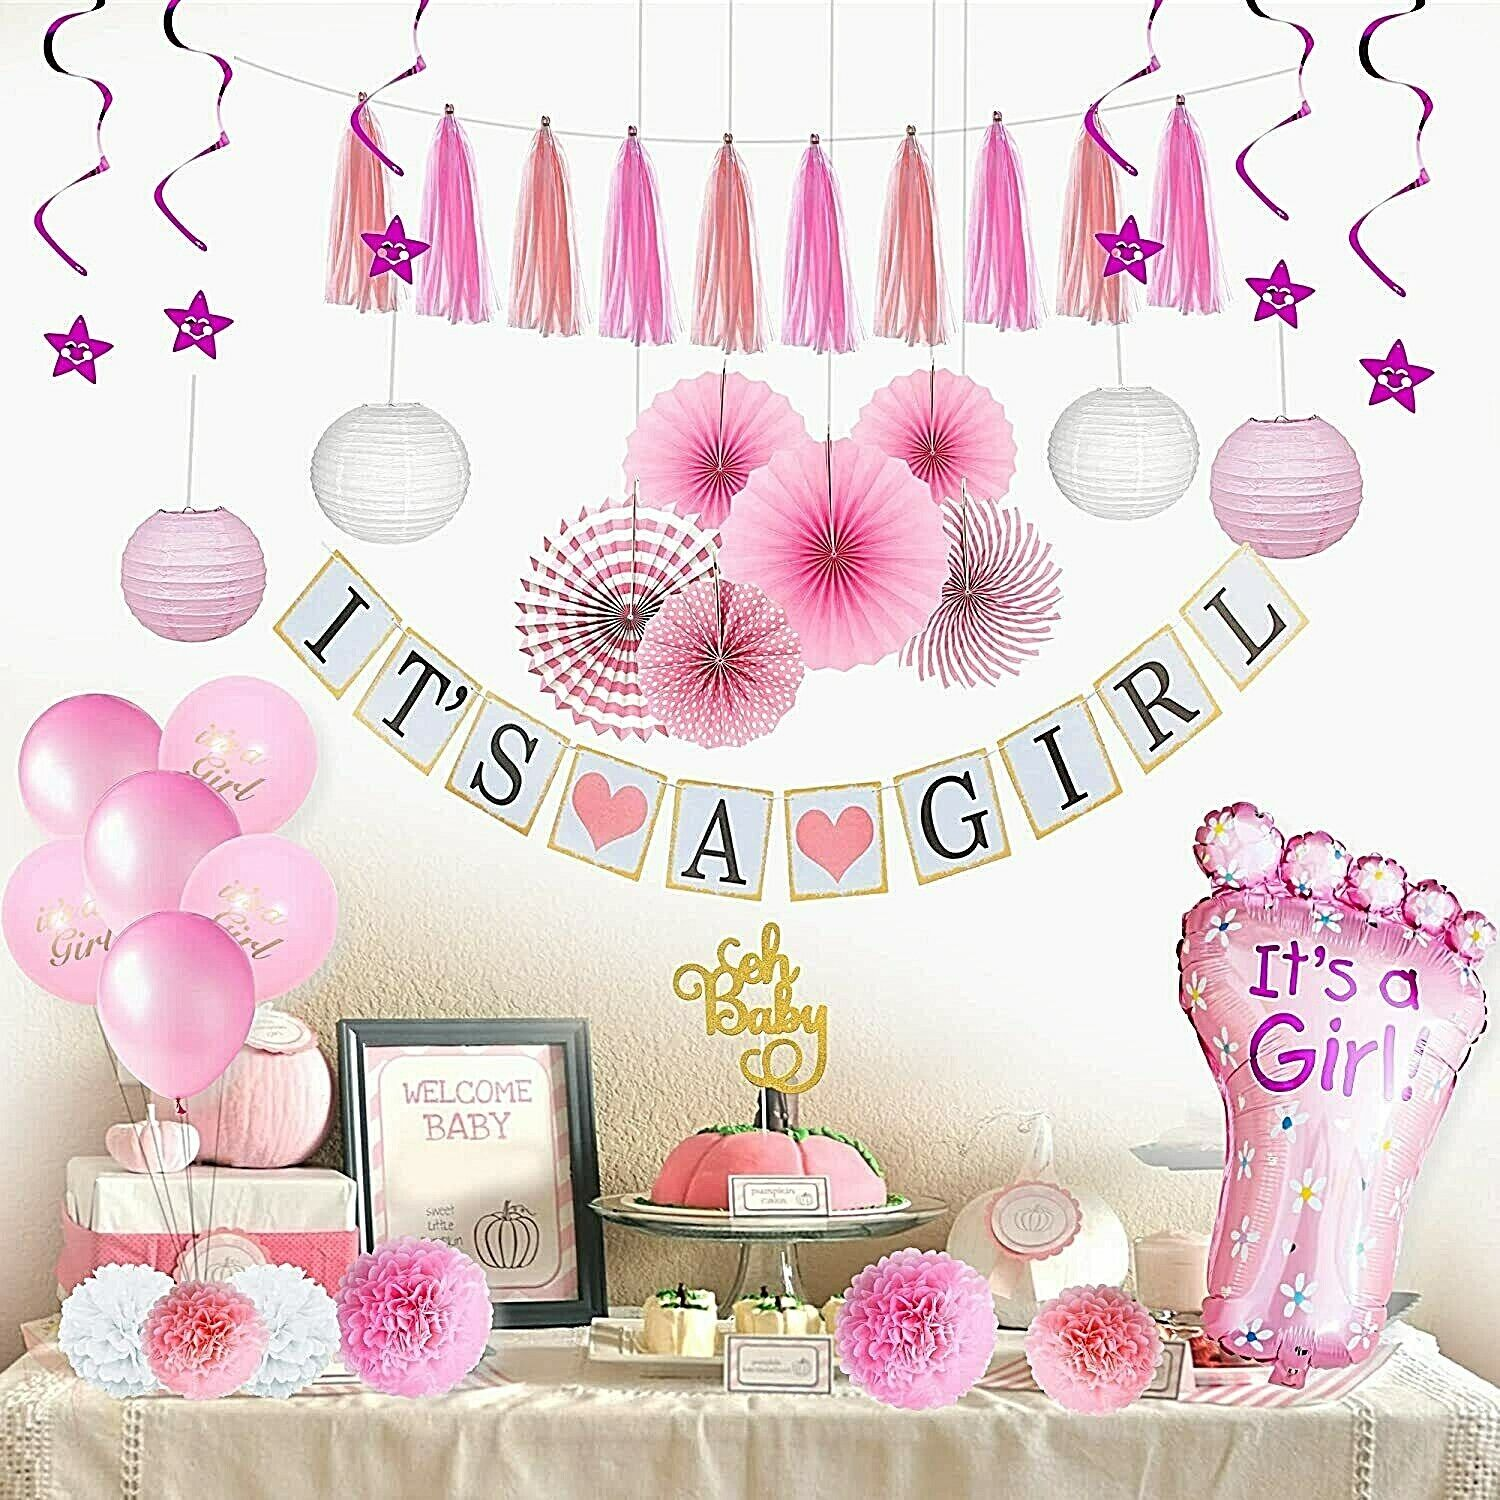 Complete Premium 41 PCS Baby Shower Decorationsfor Girls Pink Baby Shower Décor Greeting Cards & Party Supply